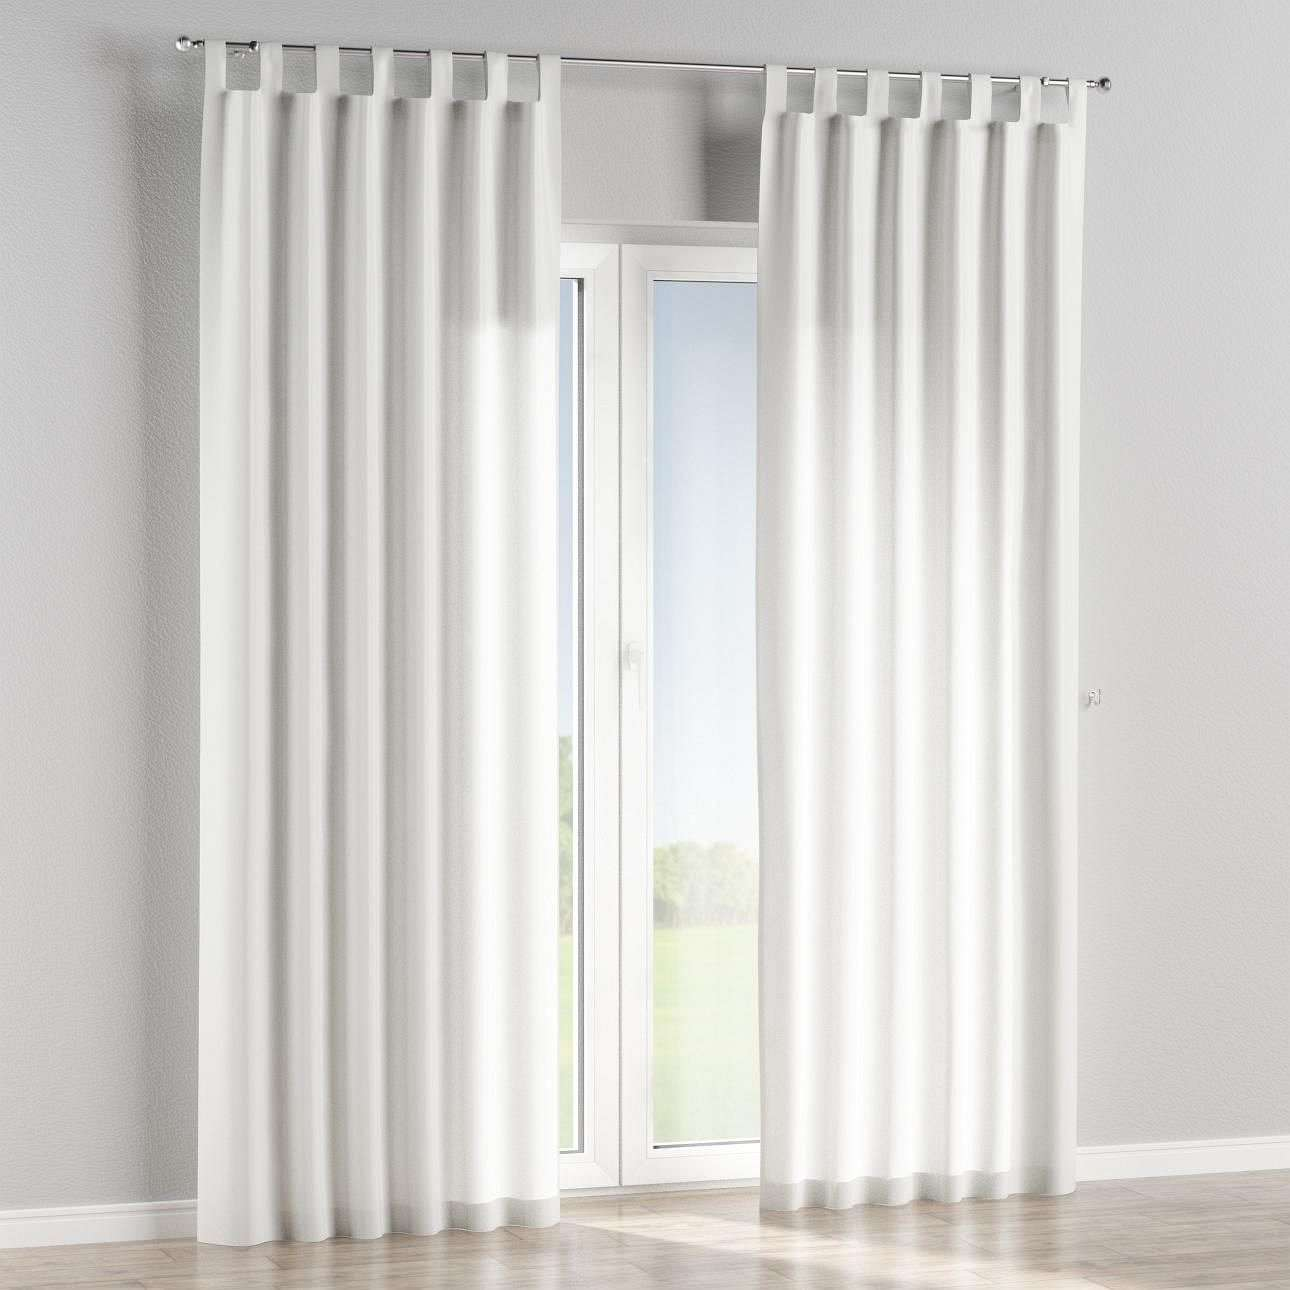 Tab top curtains in collection Cardiff, fabric: 136-27